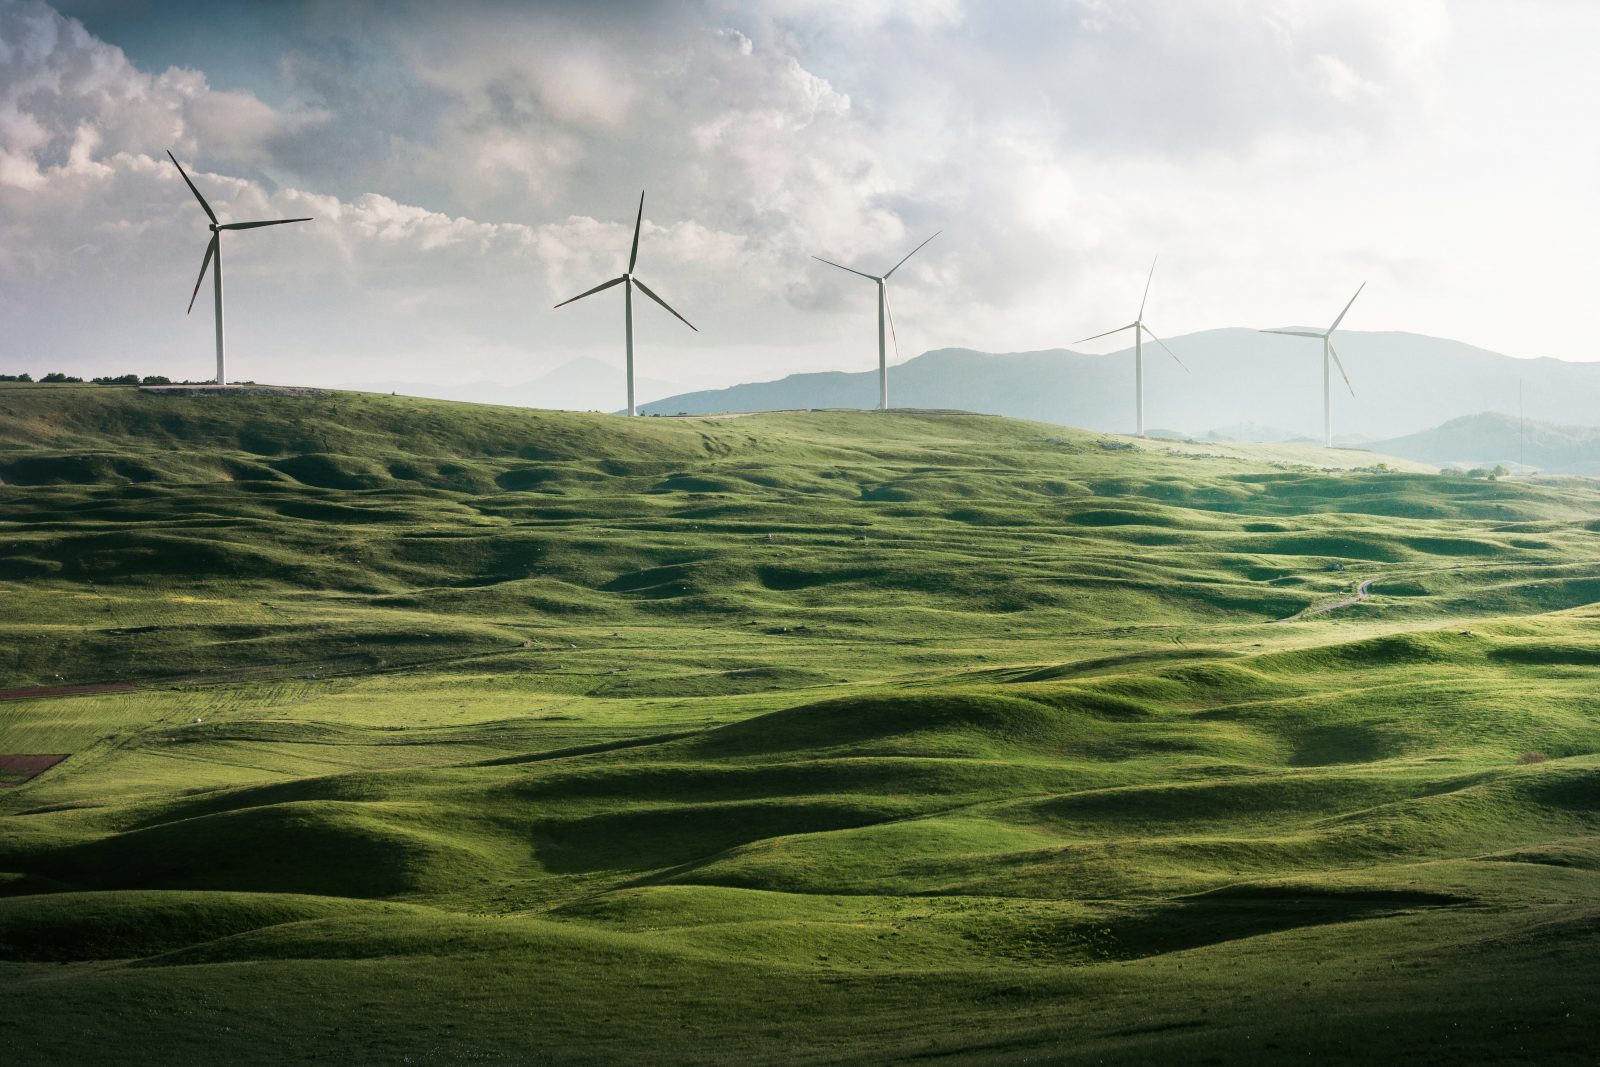 Analysis: The Energy Innovation and Carbon Dividend Act